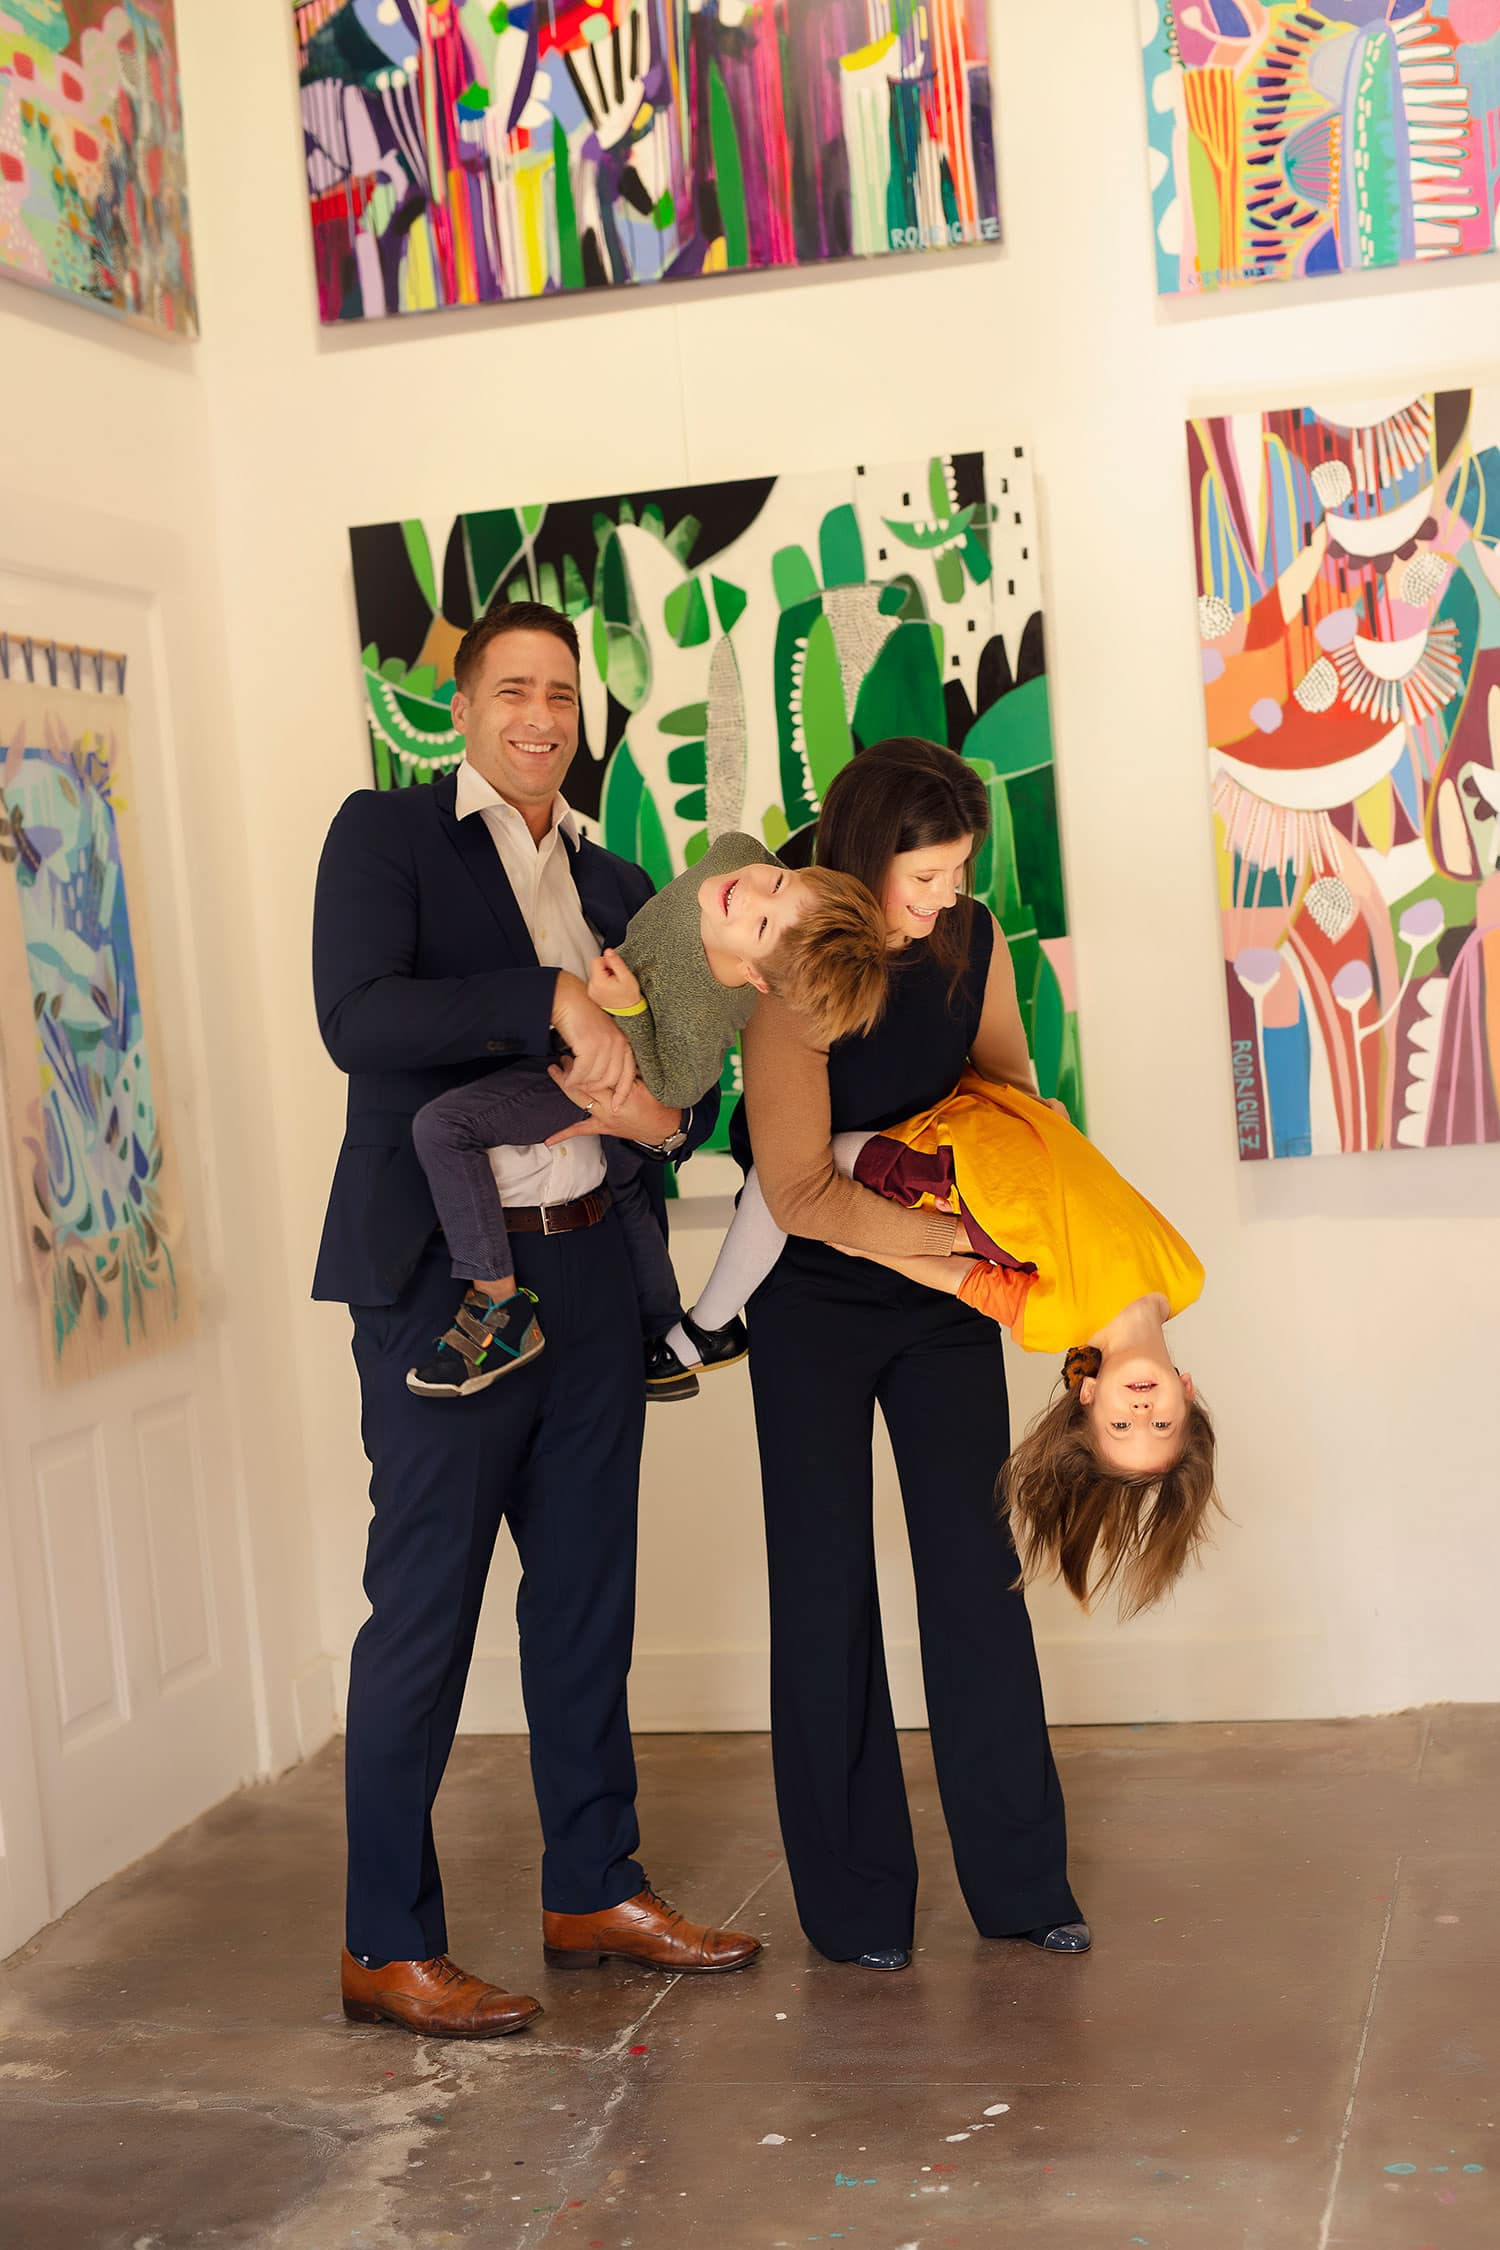 silly family photos by Annie Whitaker Photography